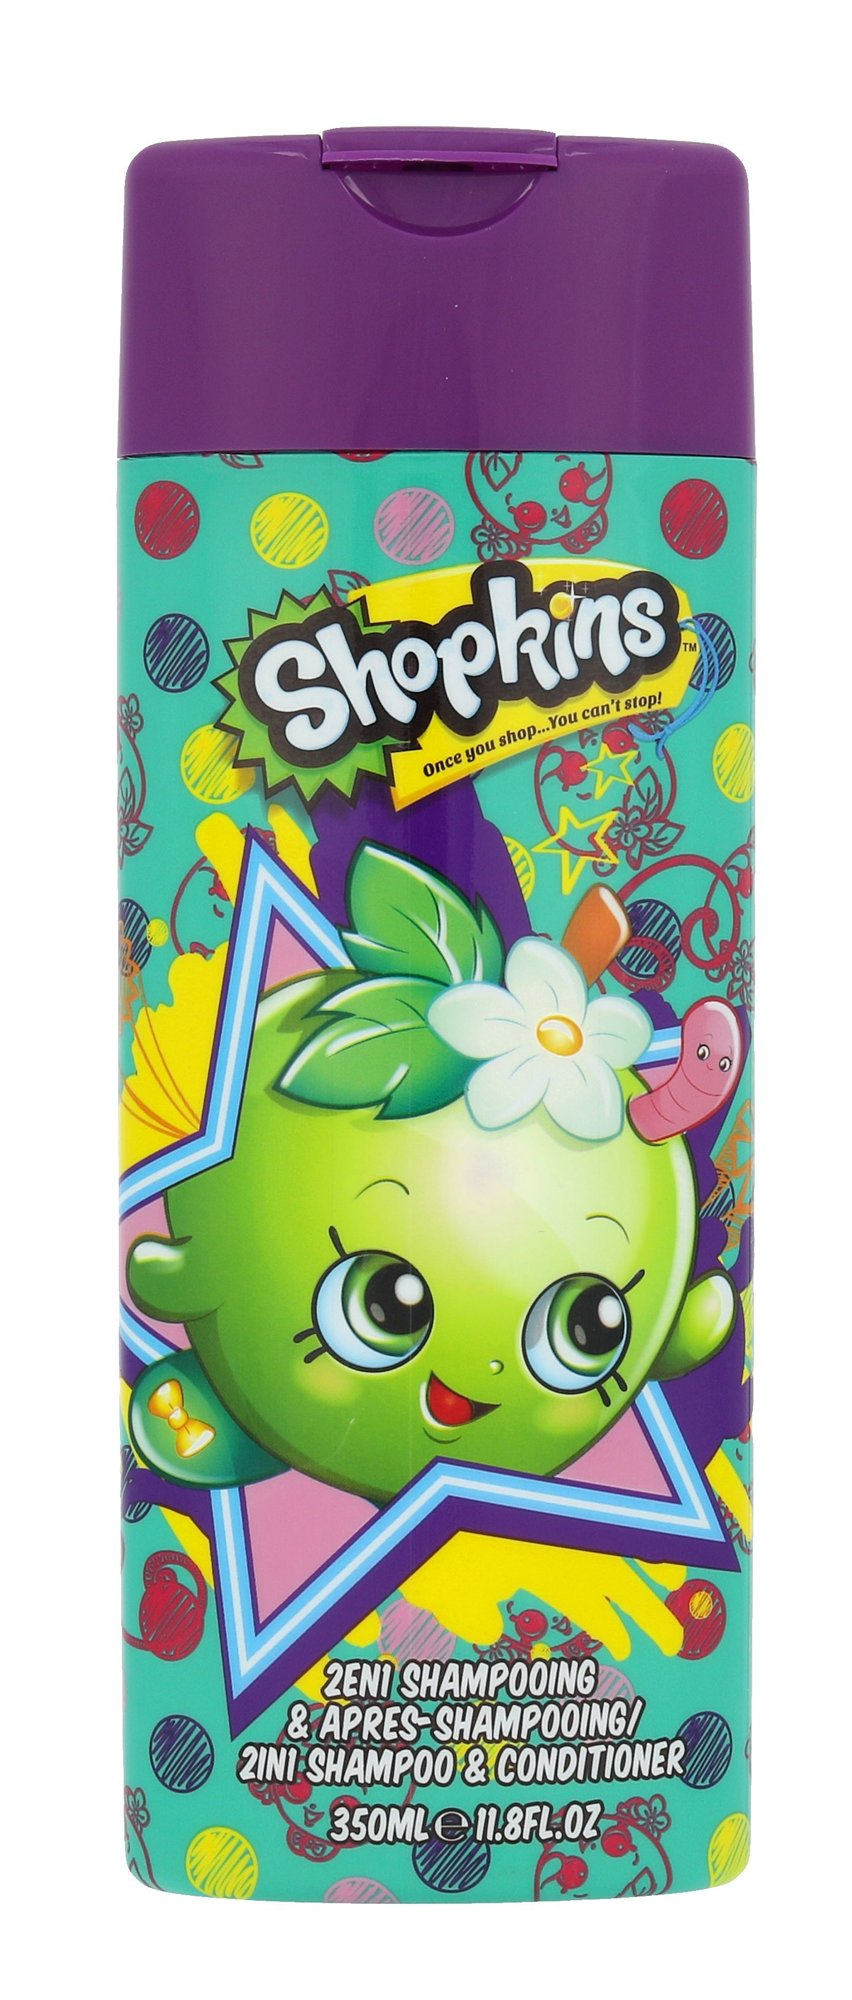 Shopkins Shopkins Shower gel 350ml